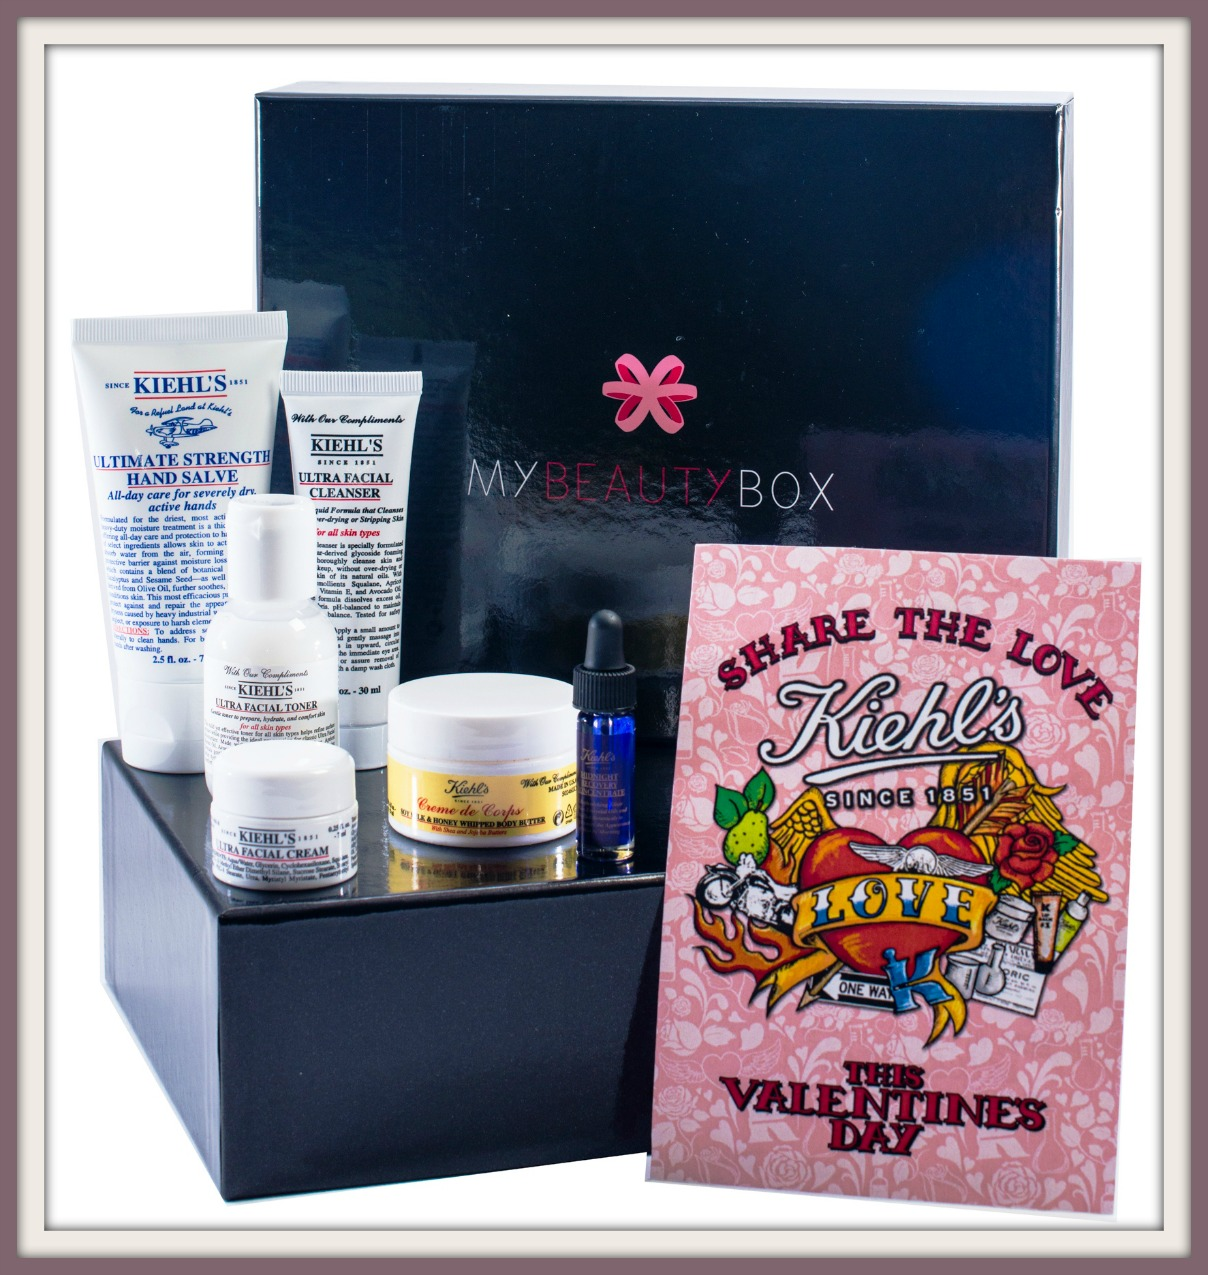 alessia milanese, thechilicool, fashion blog, fashion blogger,my-beauty-box.gennaio review + giveaway, kiehl's, sos villaggi dei bambini italia